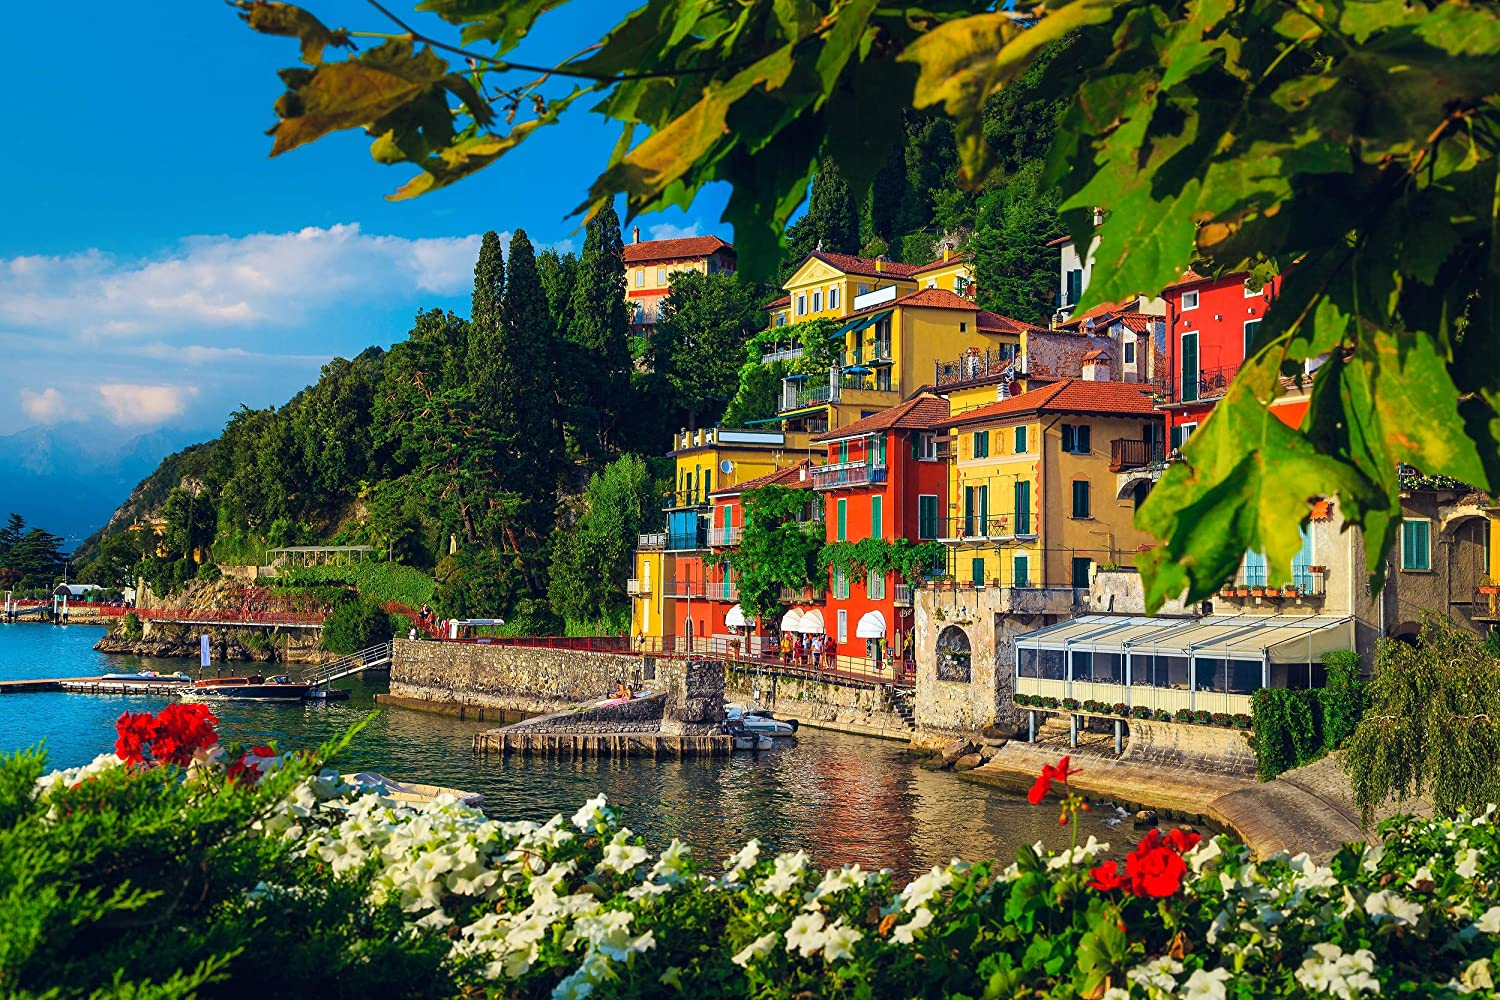 1000 Piece Jigsaw Puzzle of Flowery Garden at Lake Como, Verena, Italy for Adults and Kids - Puzzle with Colorful Poster - Precise Non-Slip Interlocking